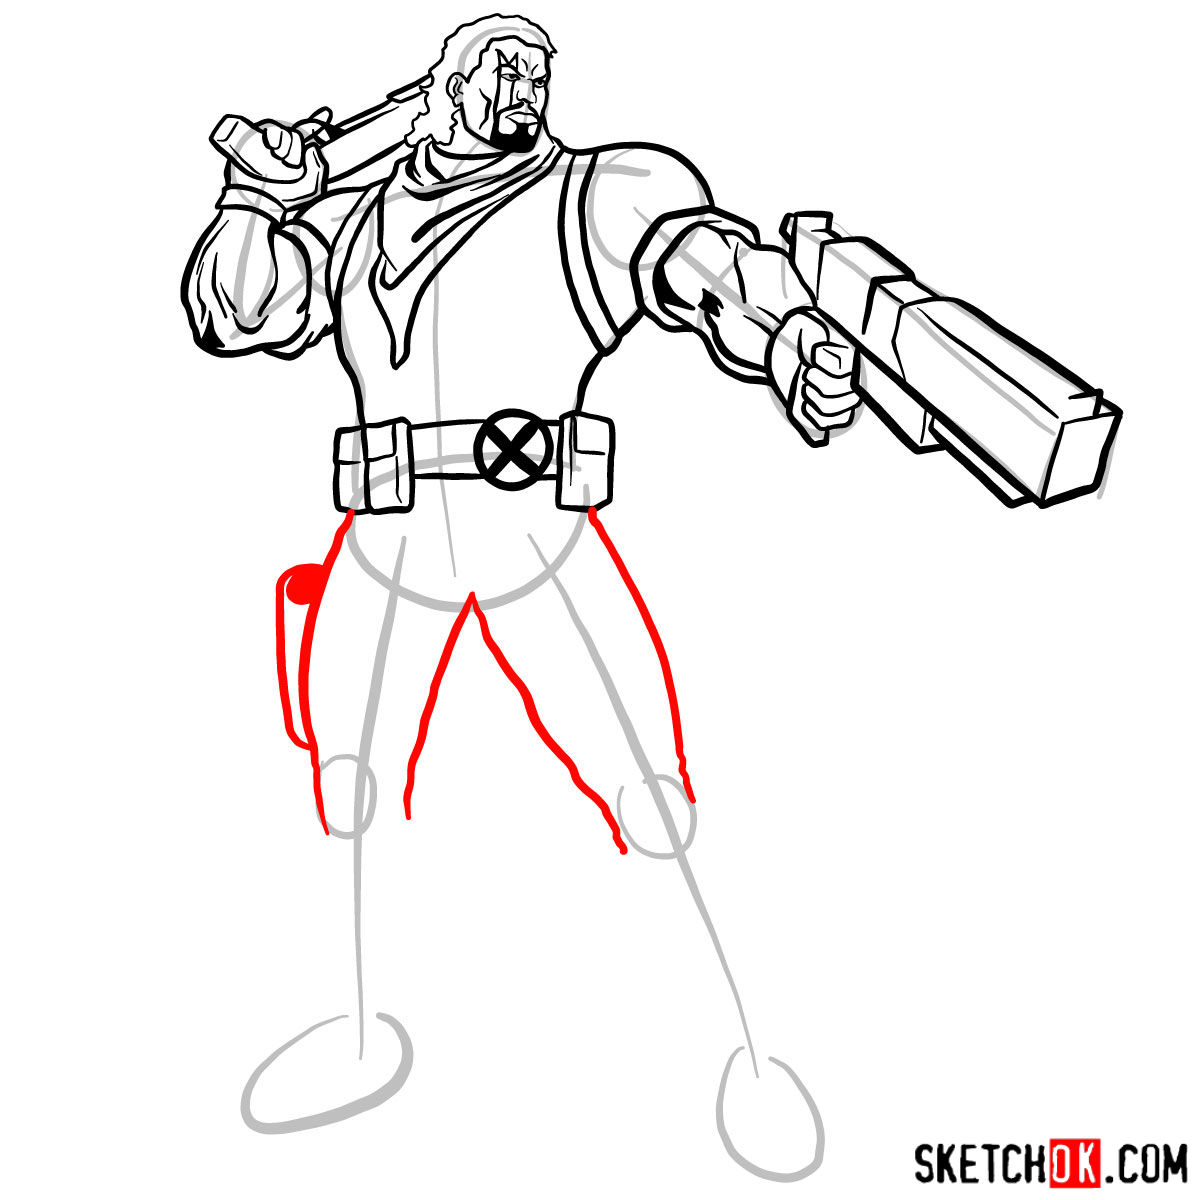 How to draw Lucas Bishop, a mutant from X-Men series - step 12